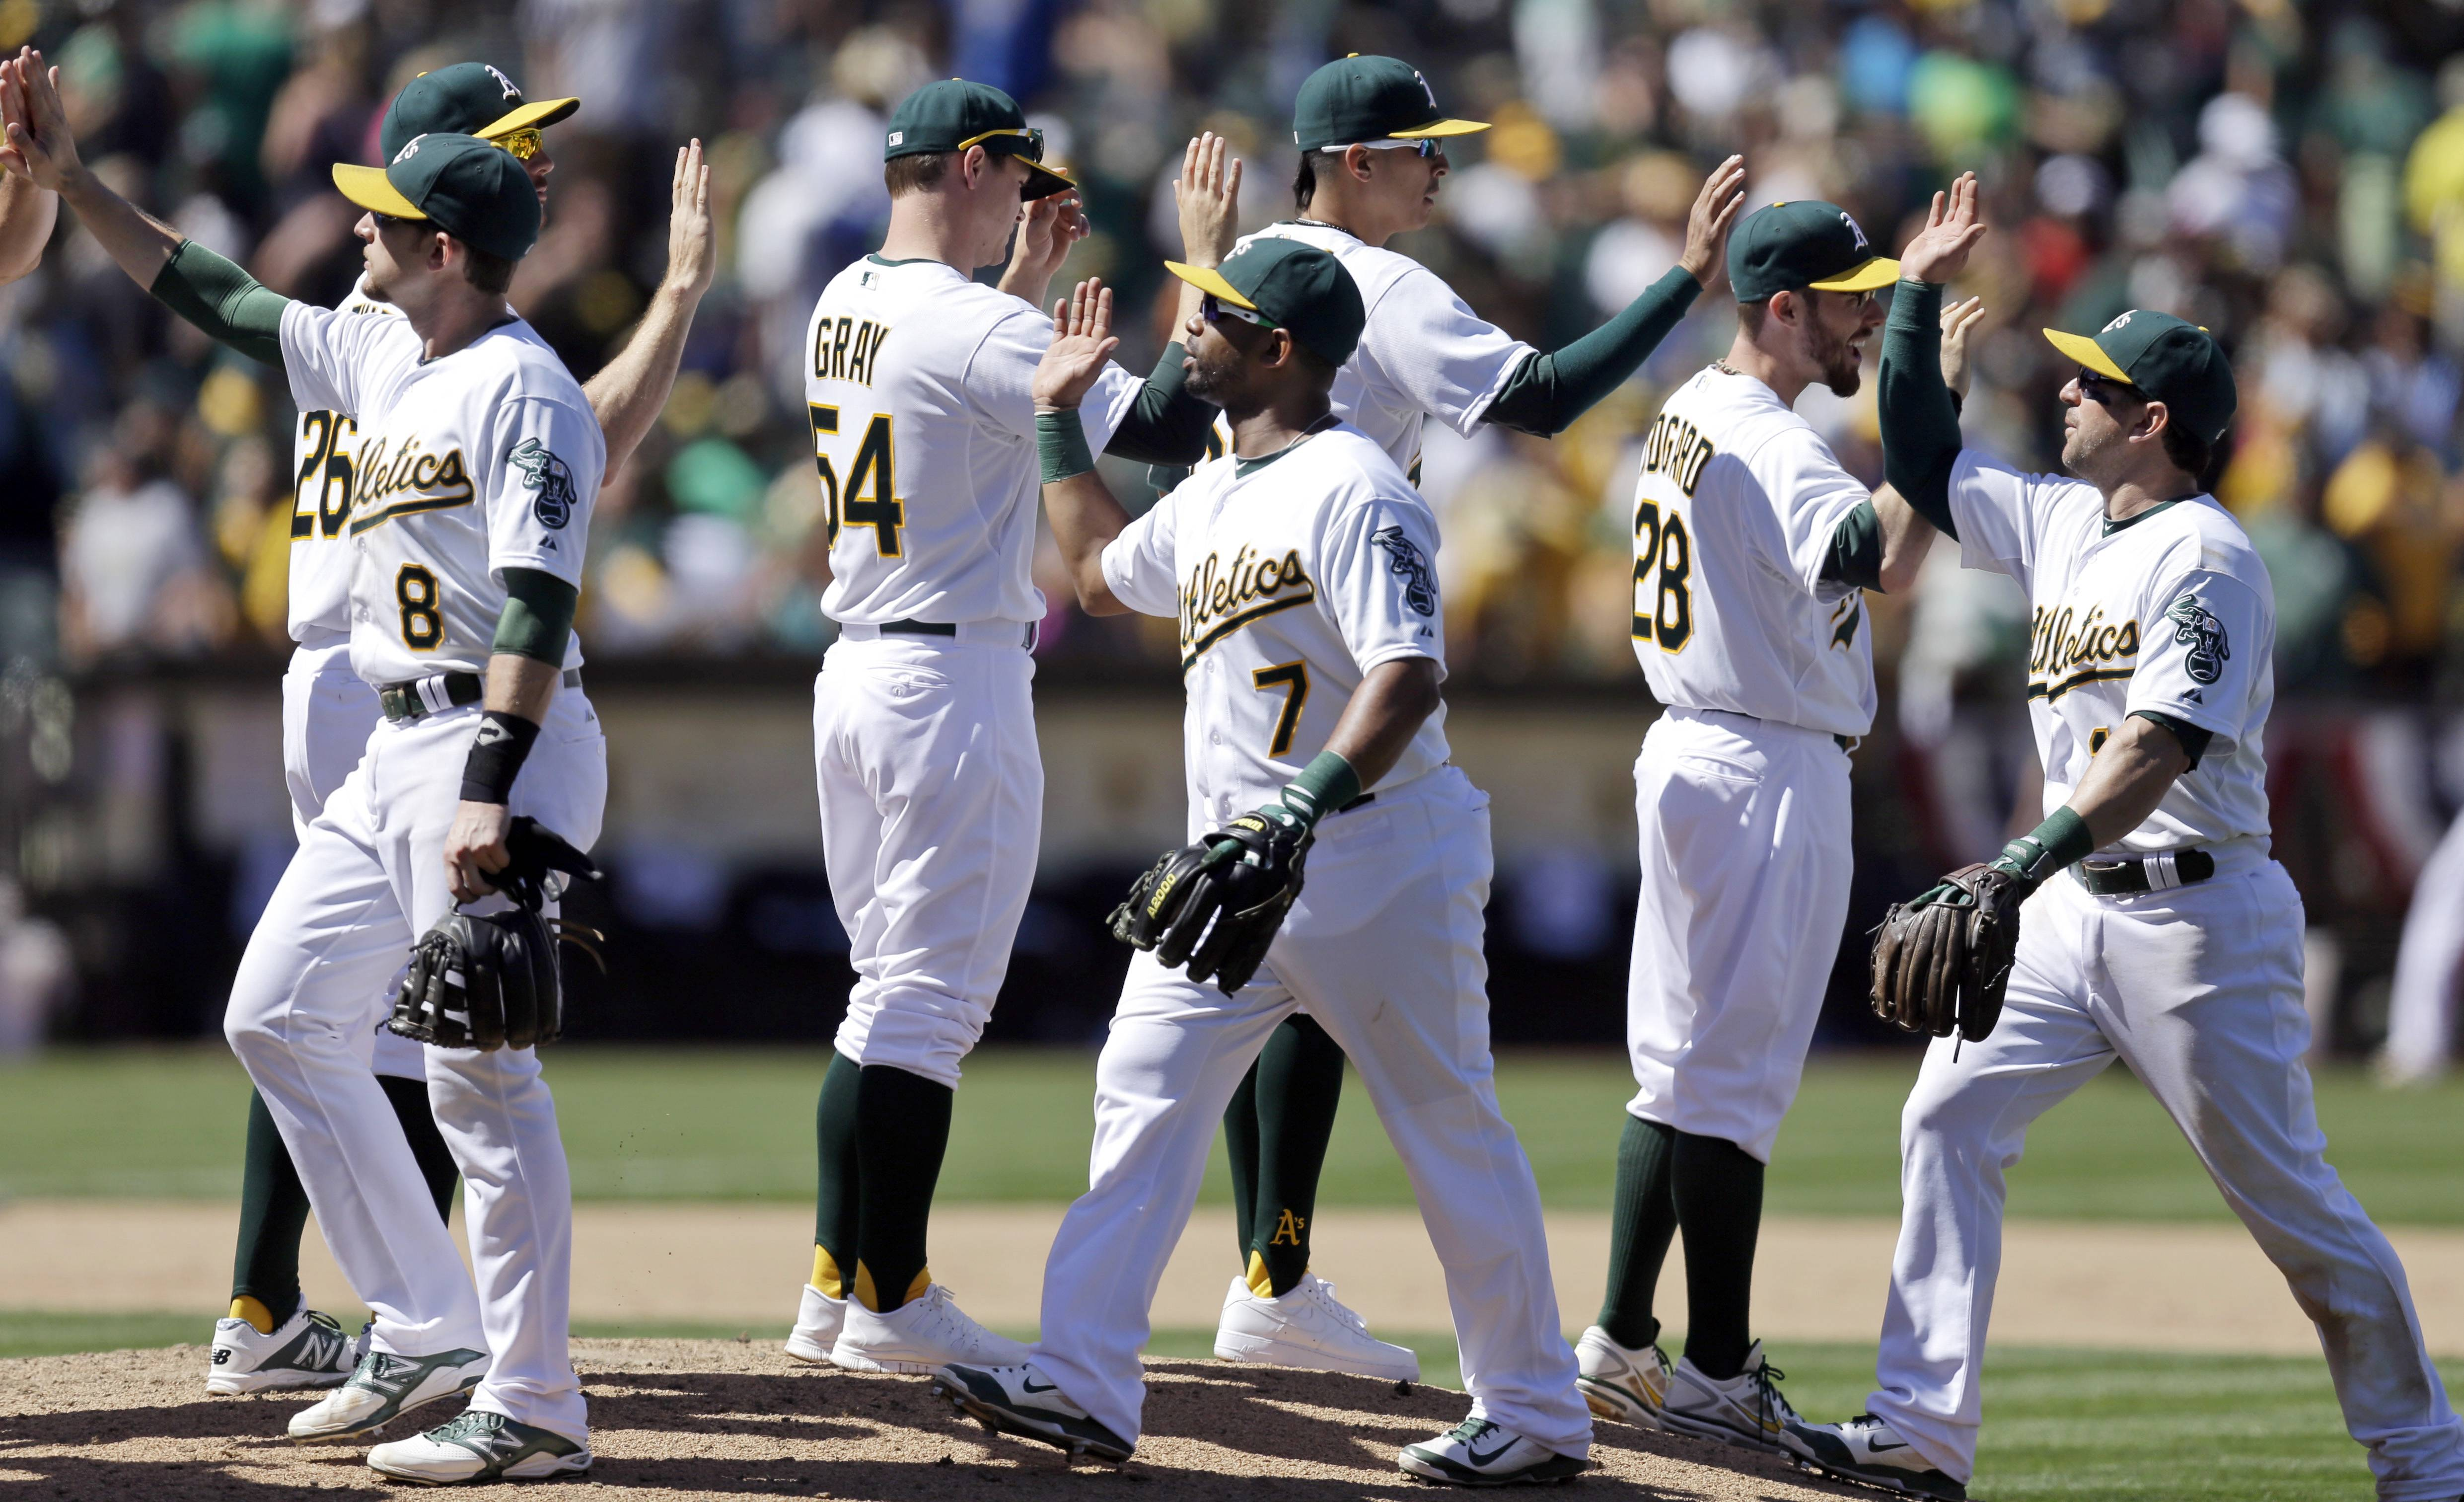 FILE - In this July 6, 2014, file photo, Oakland Athletics players including Jed Lowrie (8), Sonny Gray (54) and Alberto Callaspo (7) celebrate their four game sweep of the Toronto Blue Jays after a baseball game in Oakland, Calif. The small-budget Athletics are baseball's best team at the break in a division featuring some of the highest-paid stars. The Giants are right in the chase for the NL West crown despite some recent stumbles. It's only mid-July and there is already talk of a special October and, perhaps, a Bay Bridge Series with far more significance come fall. (AP Photo/Ben Margot, File)